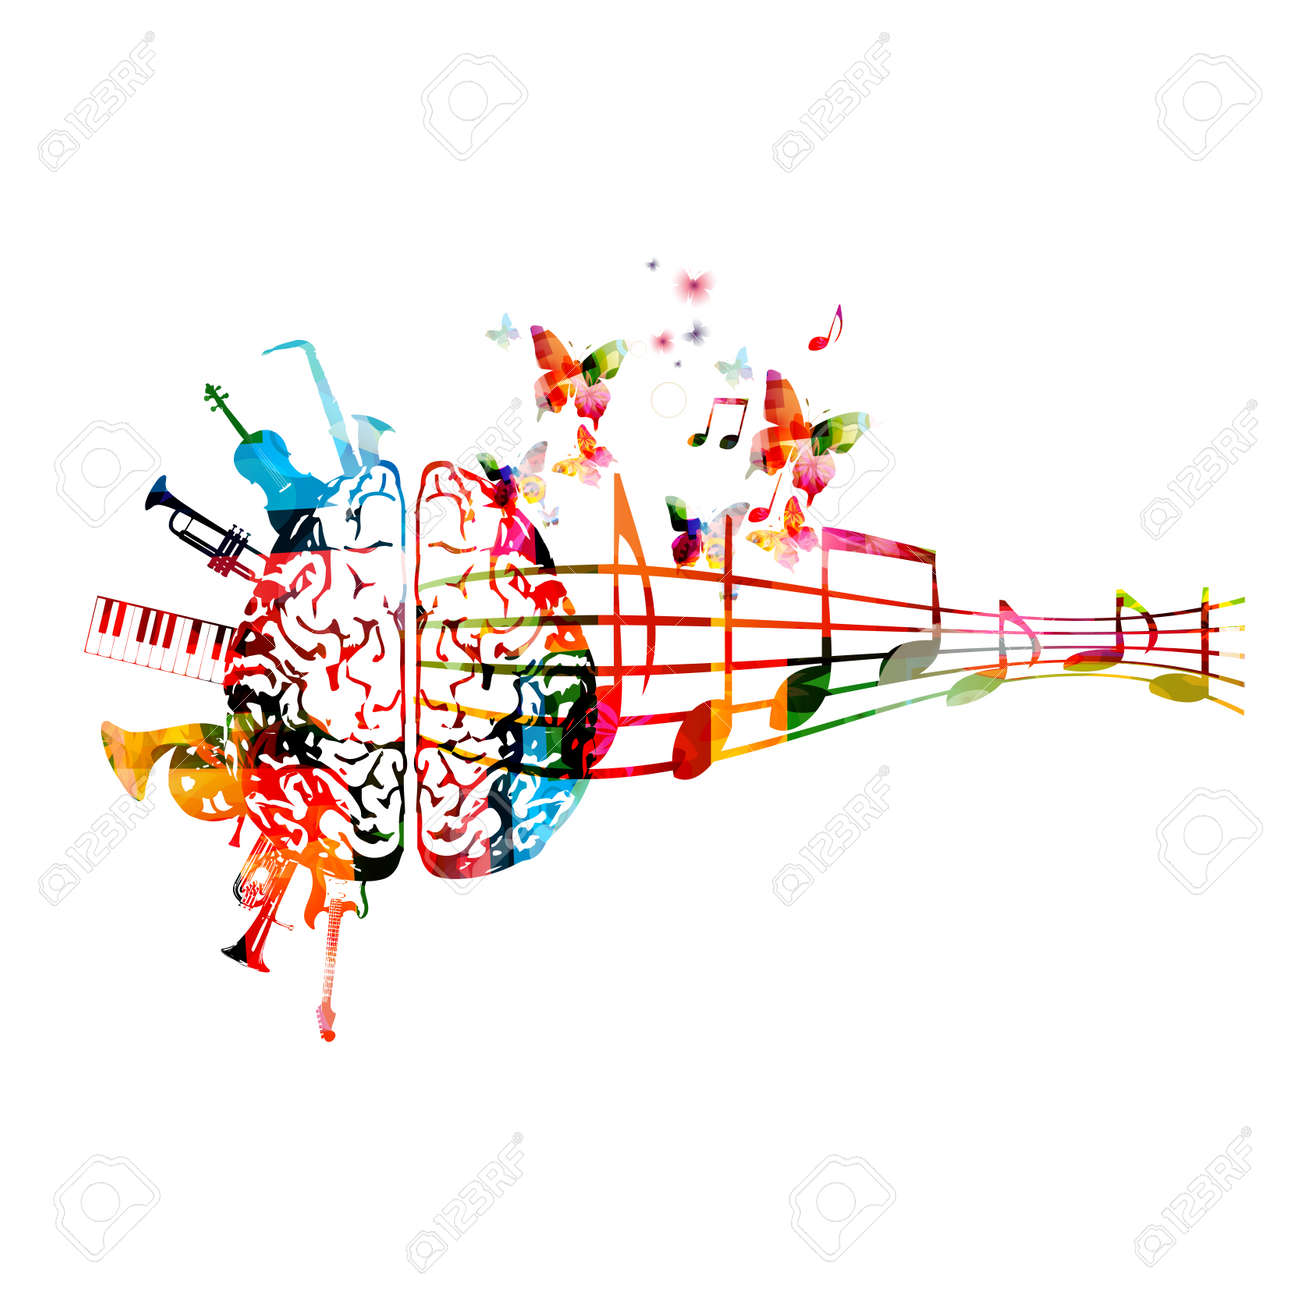 Colorful human brain with music notes and instruments isolated - 124209610